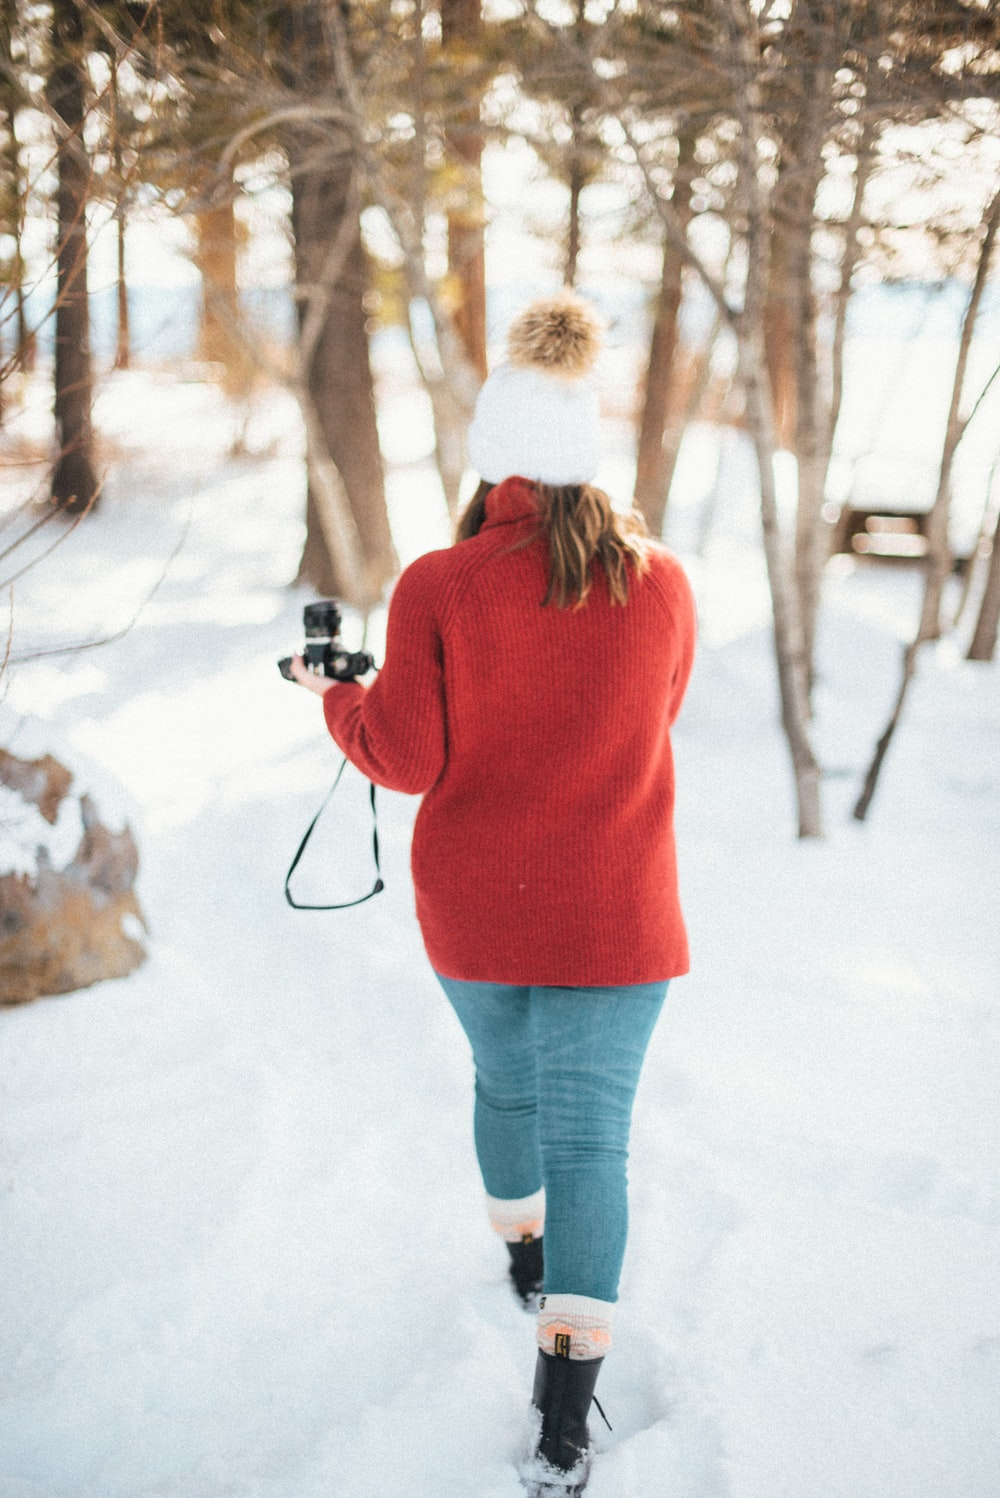 woman in red sweater and blue denim jeans holding camera on snow covered ground during daytime